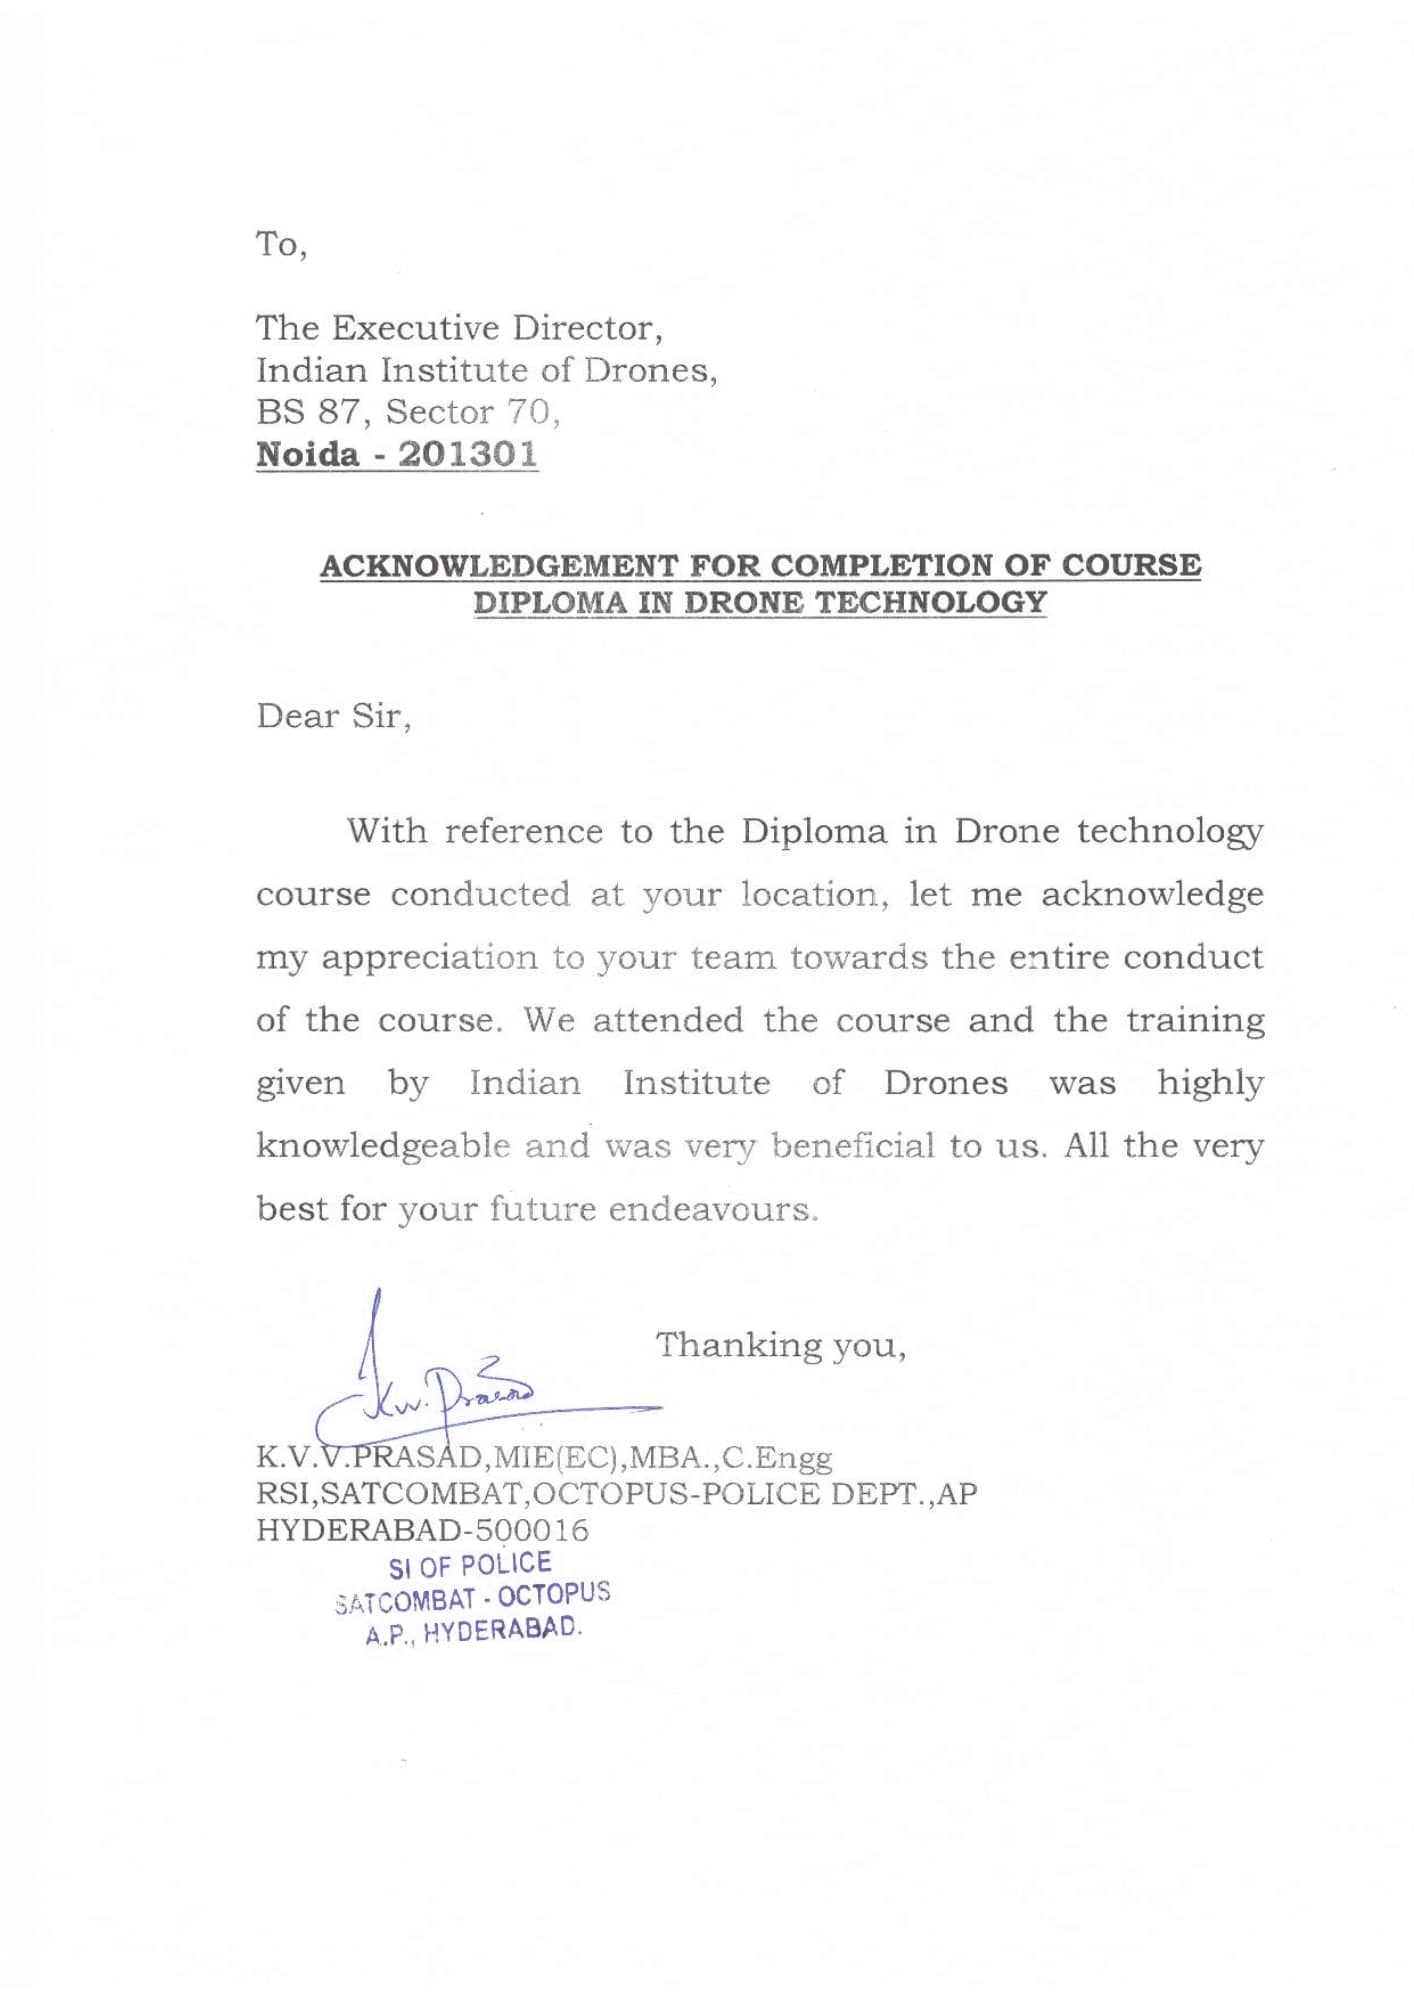 Satisfactory Letter for Drone Training Received from Octopus, Andhra Pradesh Police